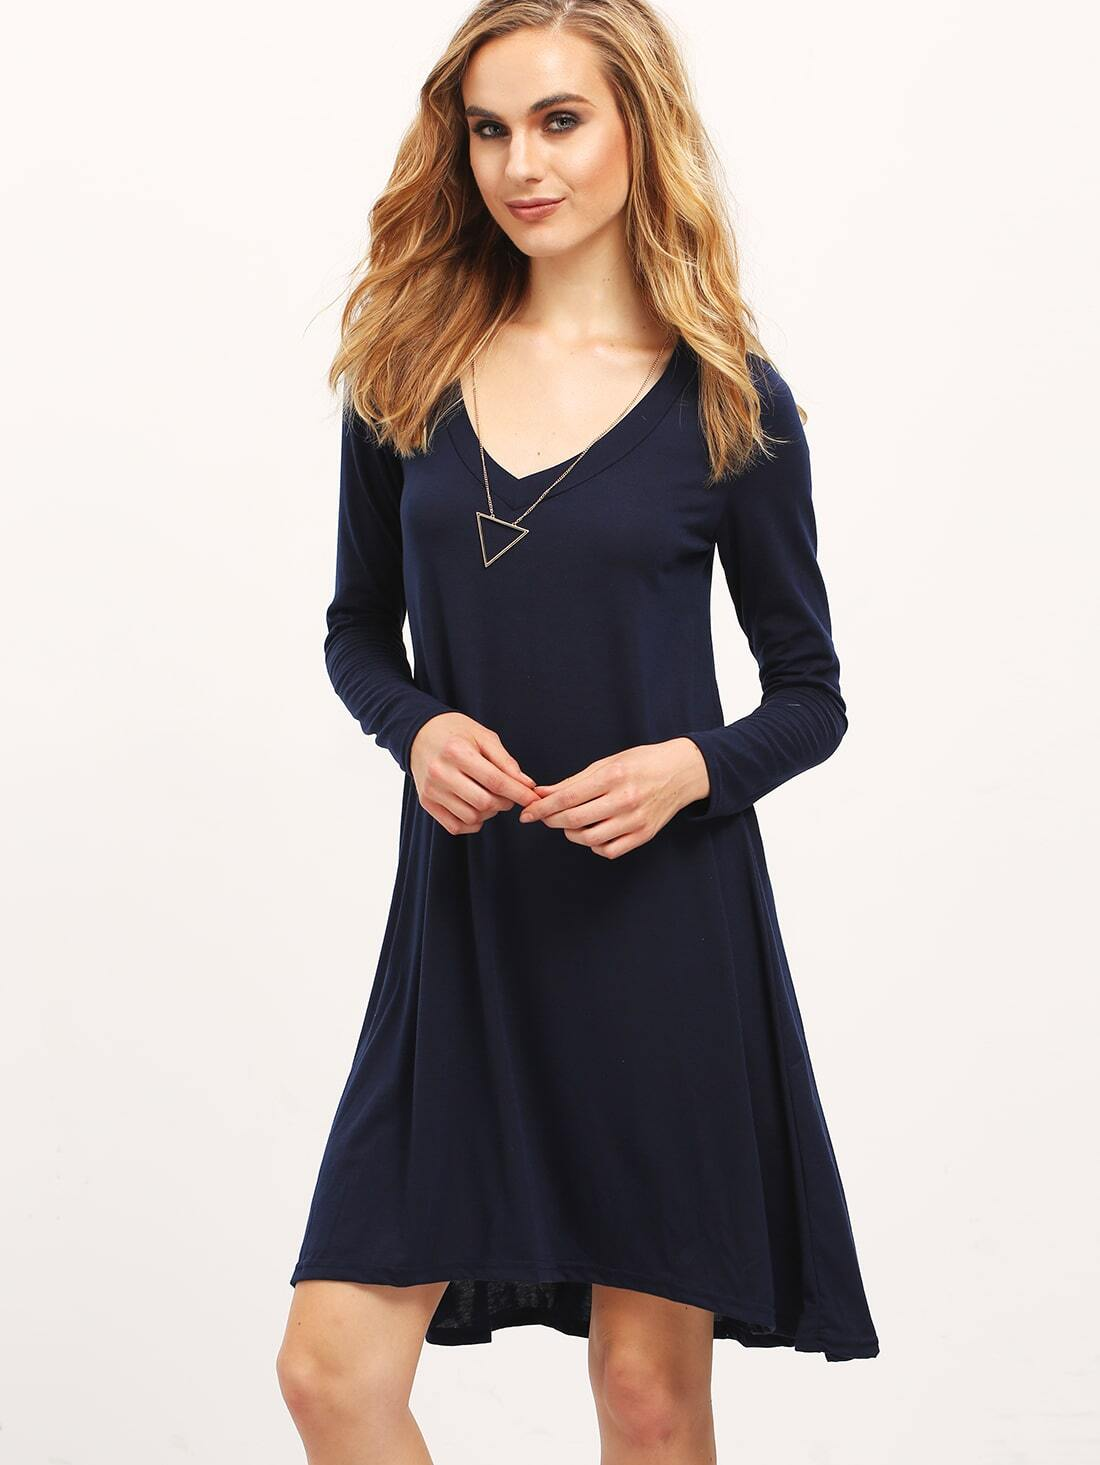 robe en jersey col v manches longues bleu marine french romwe With robe manche courte col v